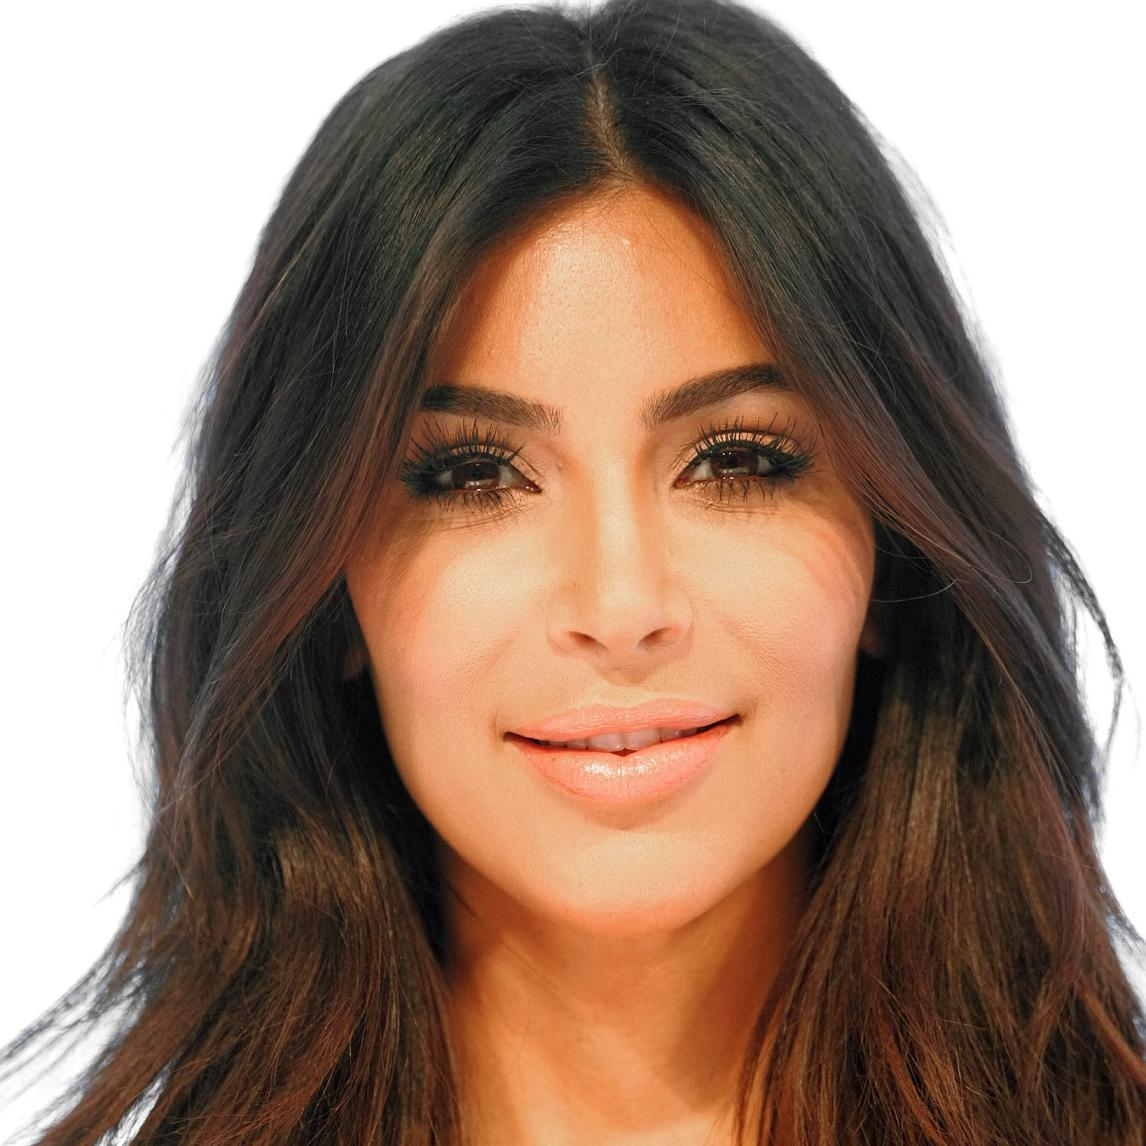 Kim Kardashian Bio, Net Worth, Facts